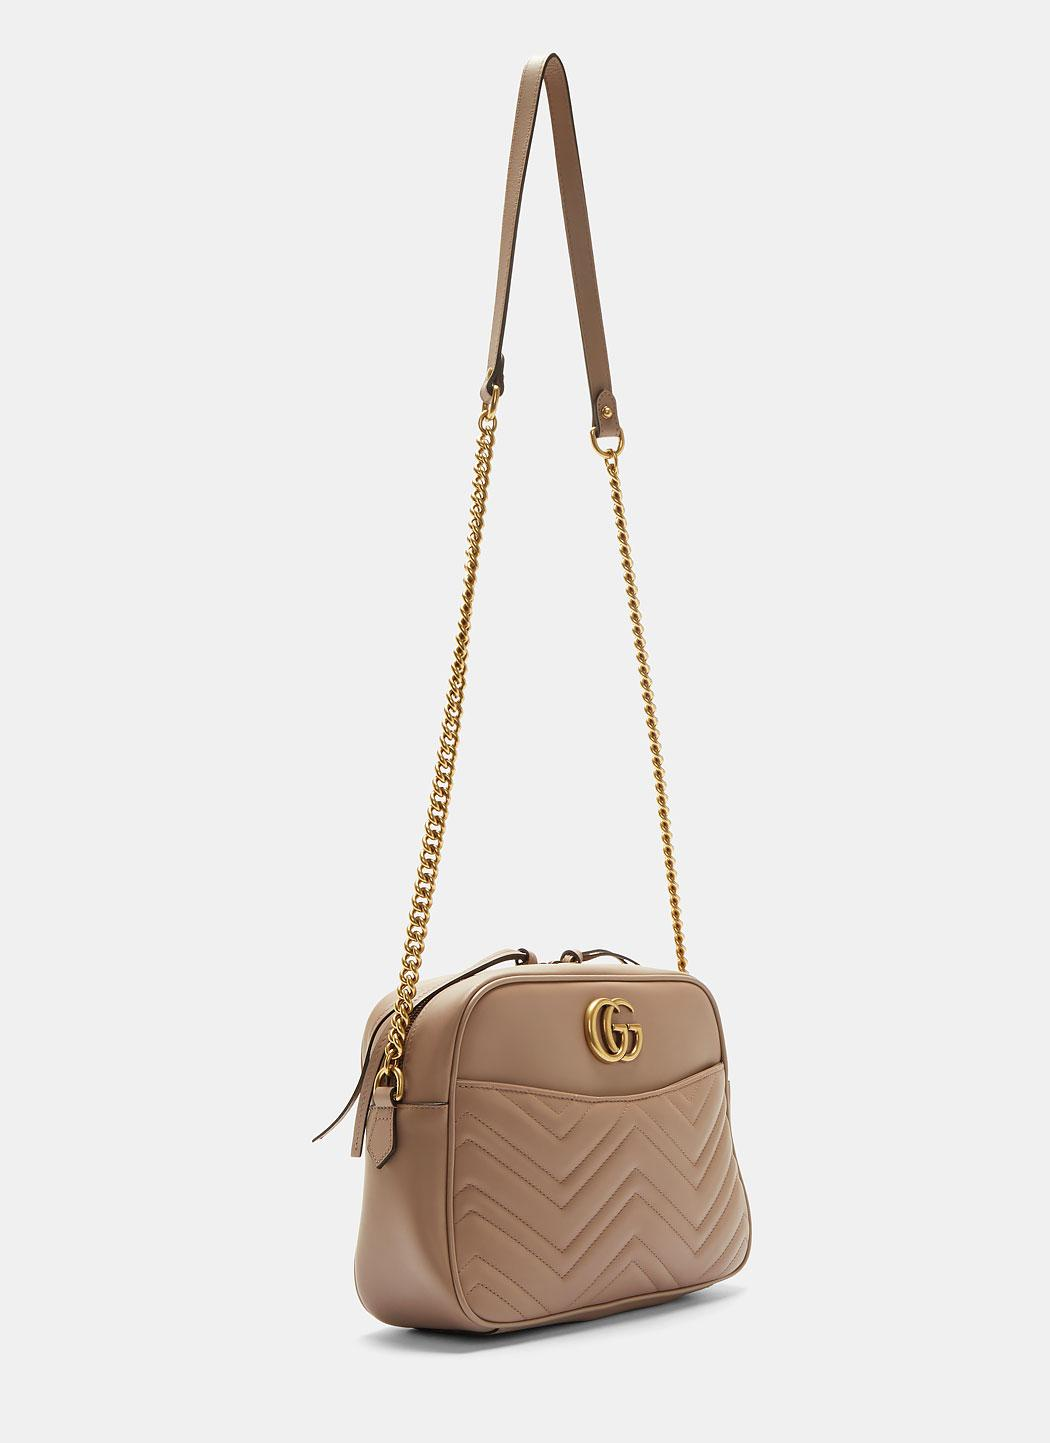 49705f203ef3a Lyst - Gucci Gg Marmont Matelassé Medium Shoulder Bag In Taupe in ...